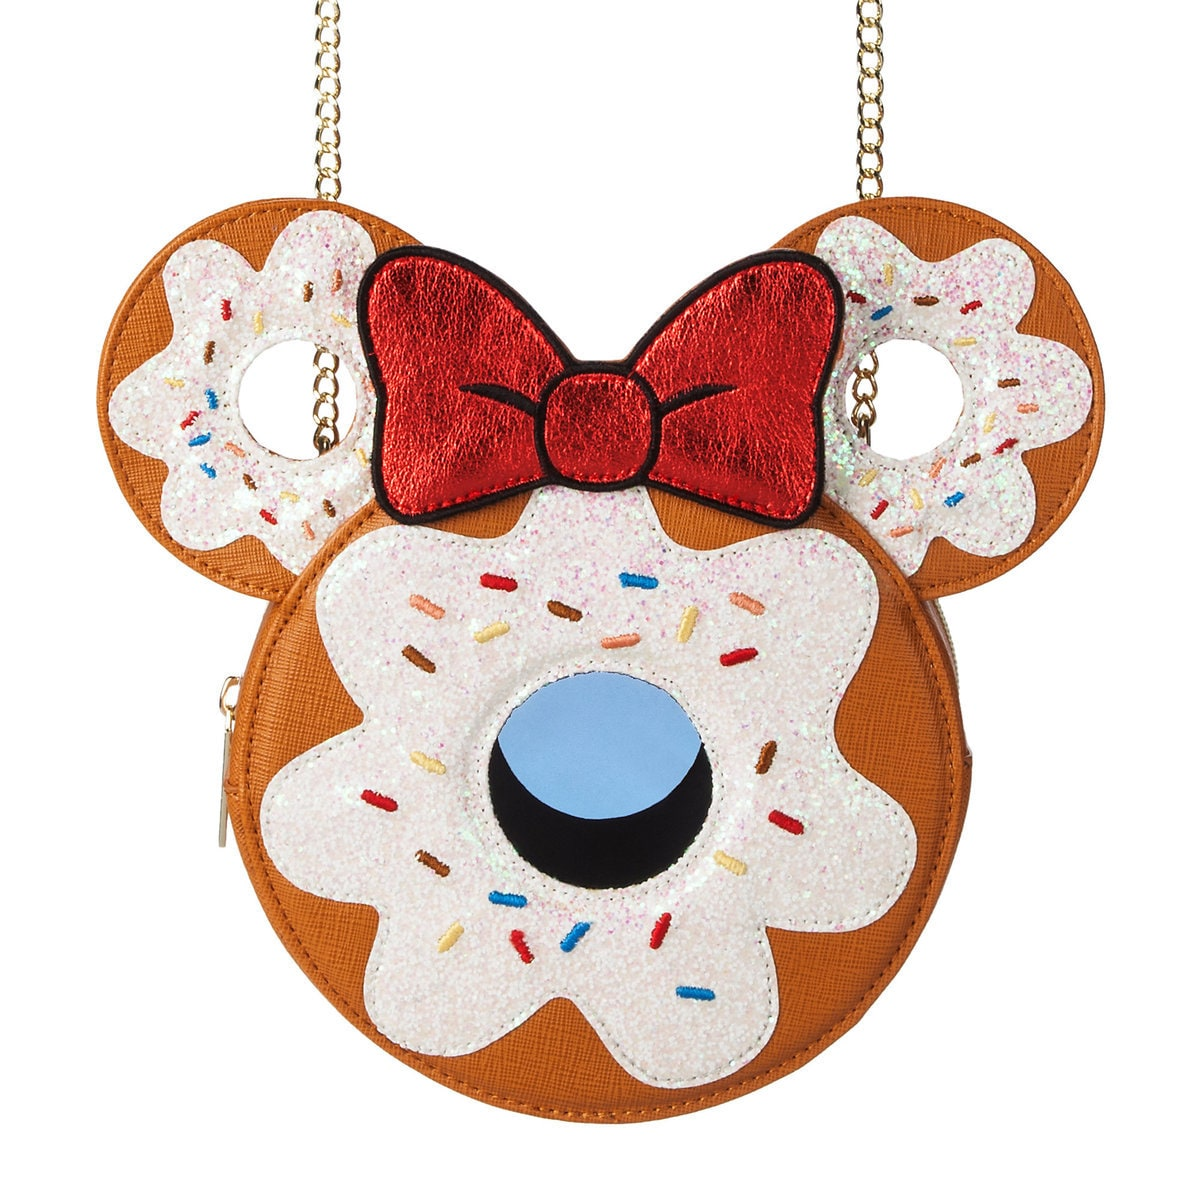 b05b96bdc Product Image of Minnie Mouse Donut Crossbody Bag by Danielle Nicole # 1